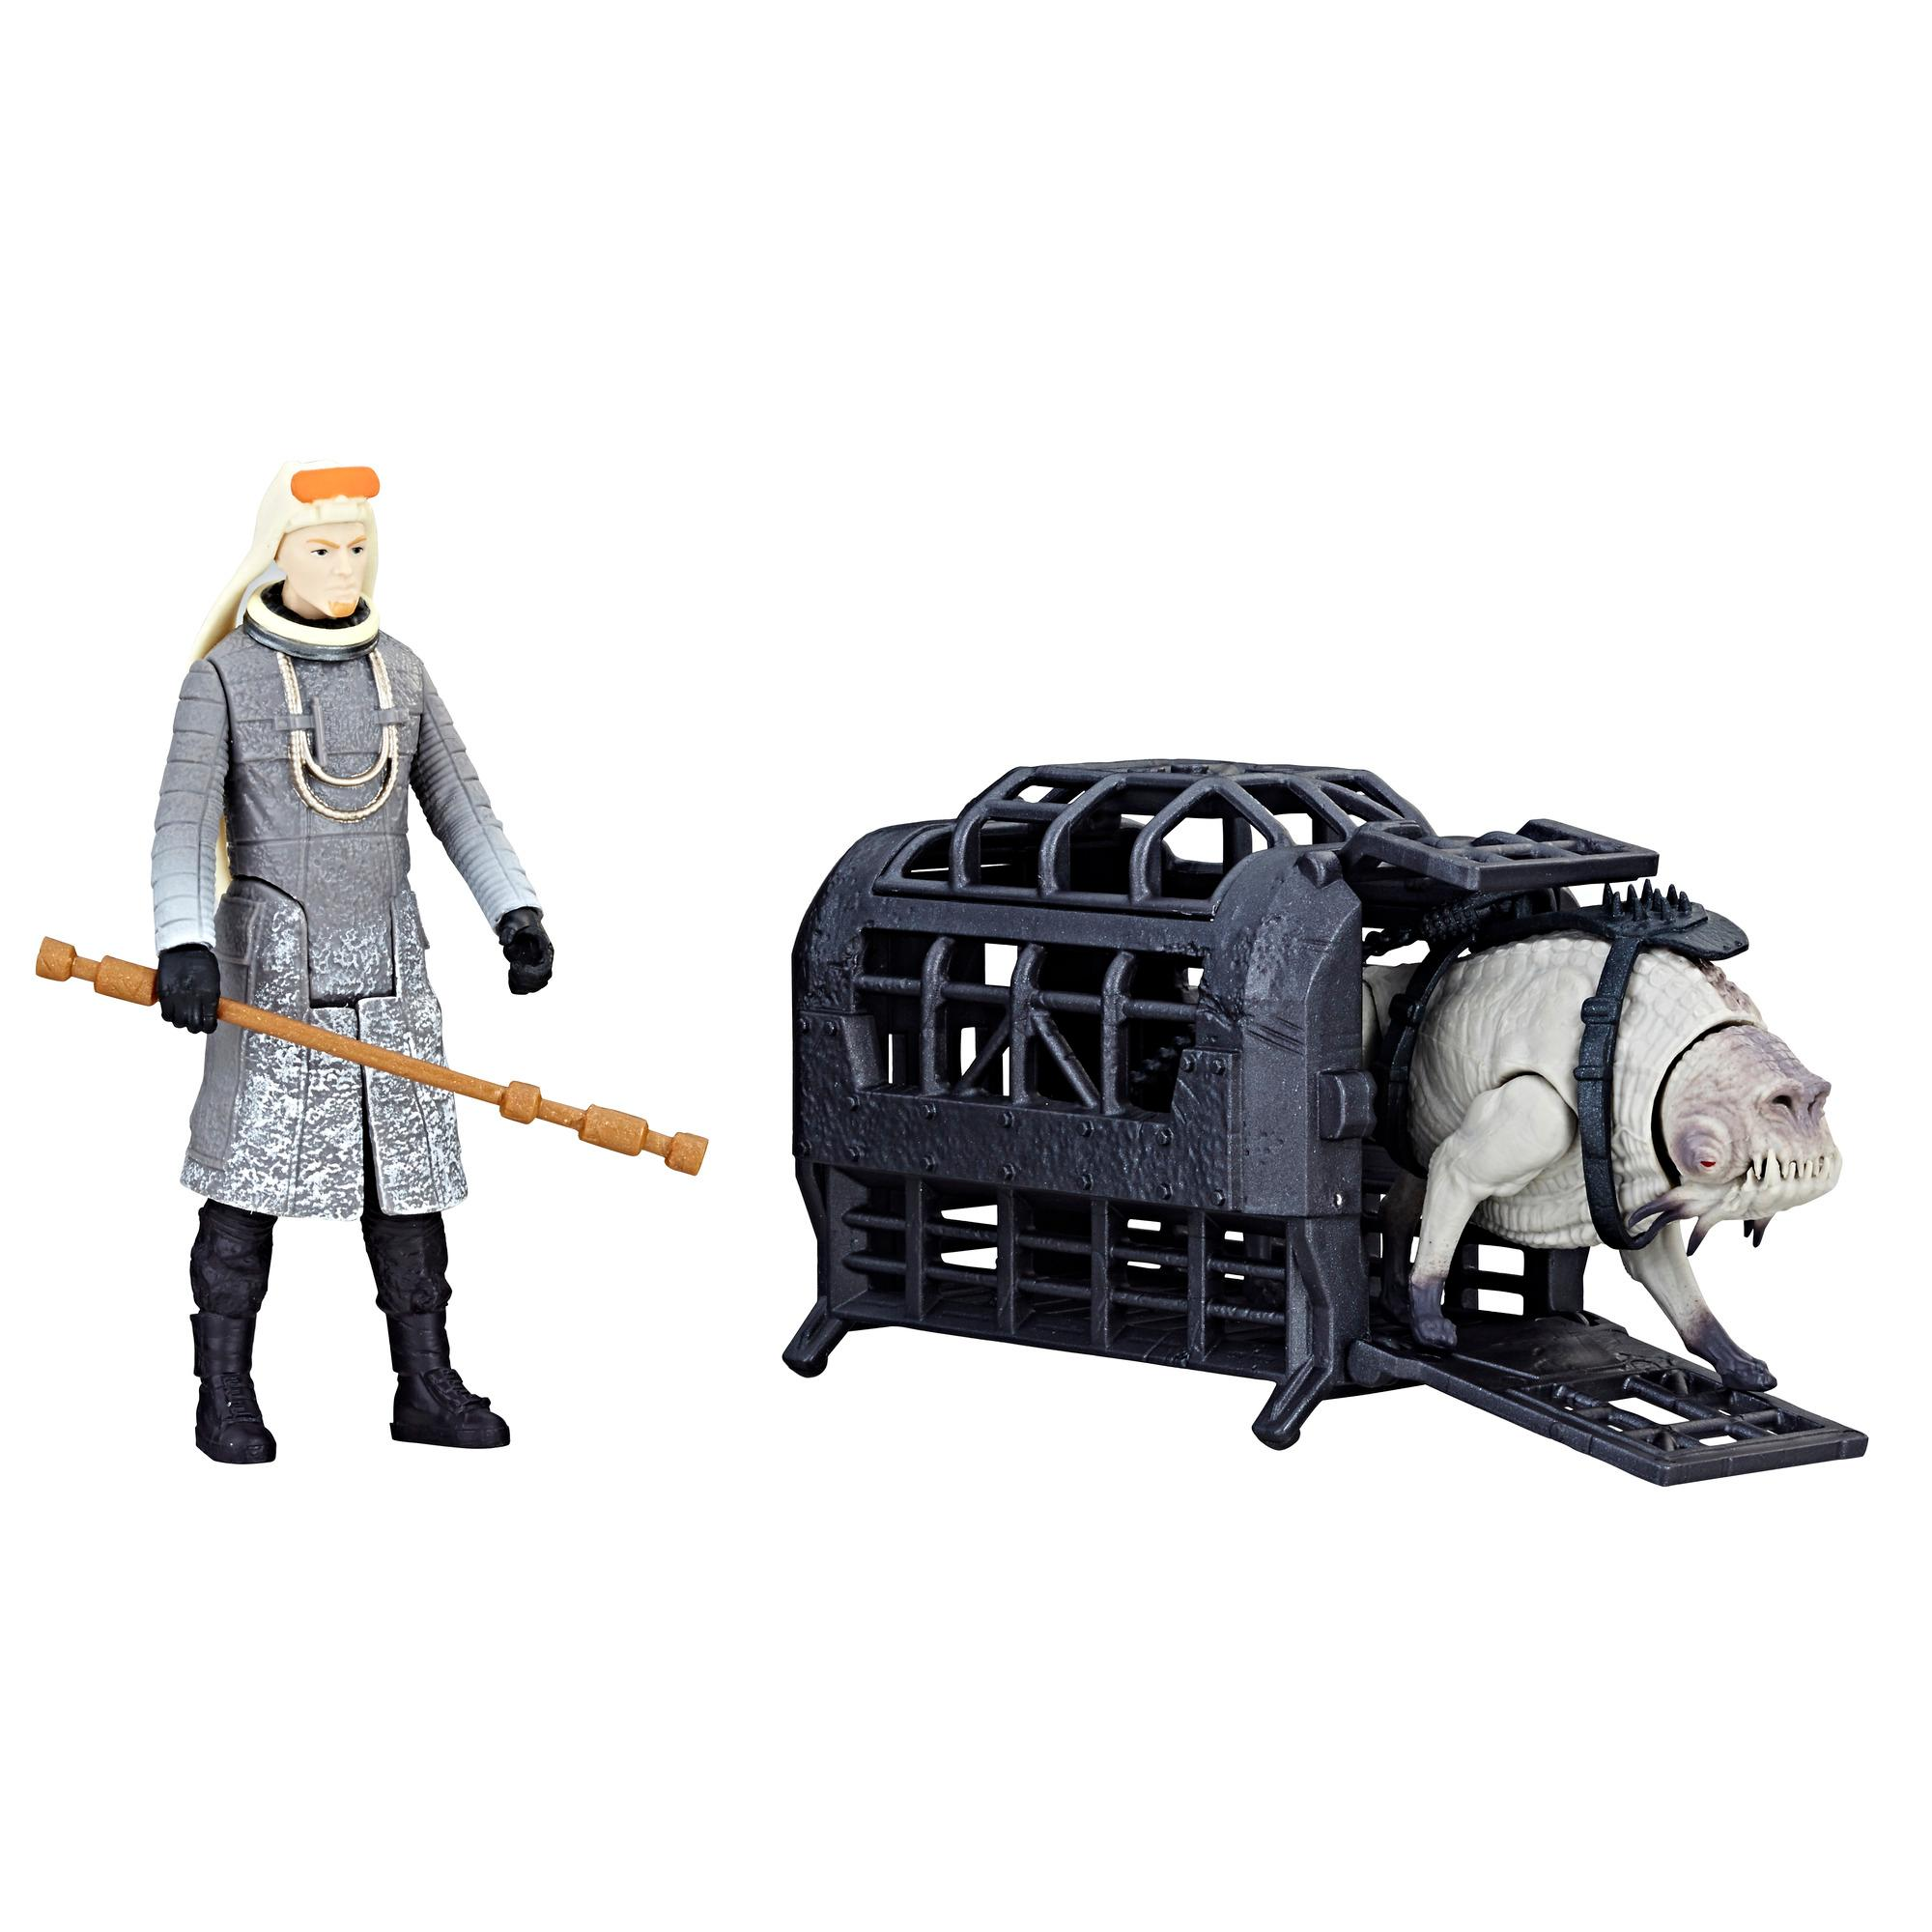 Star Wars Force Link 2.0 Rebolt & Corellian Hound 2-Pack